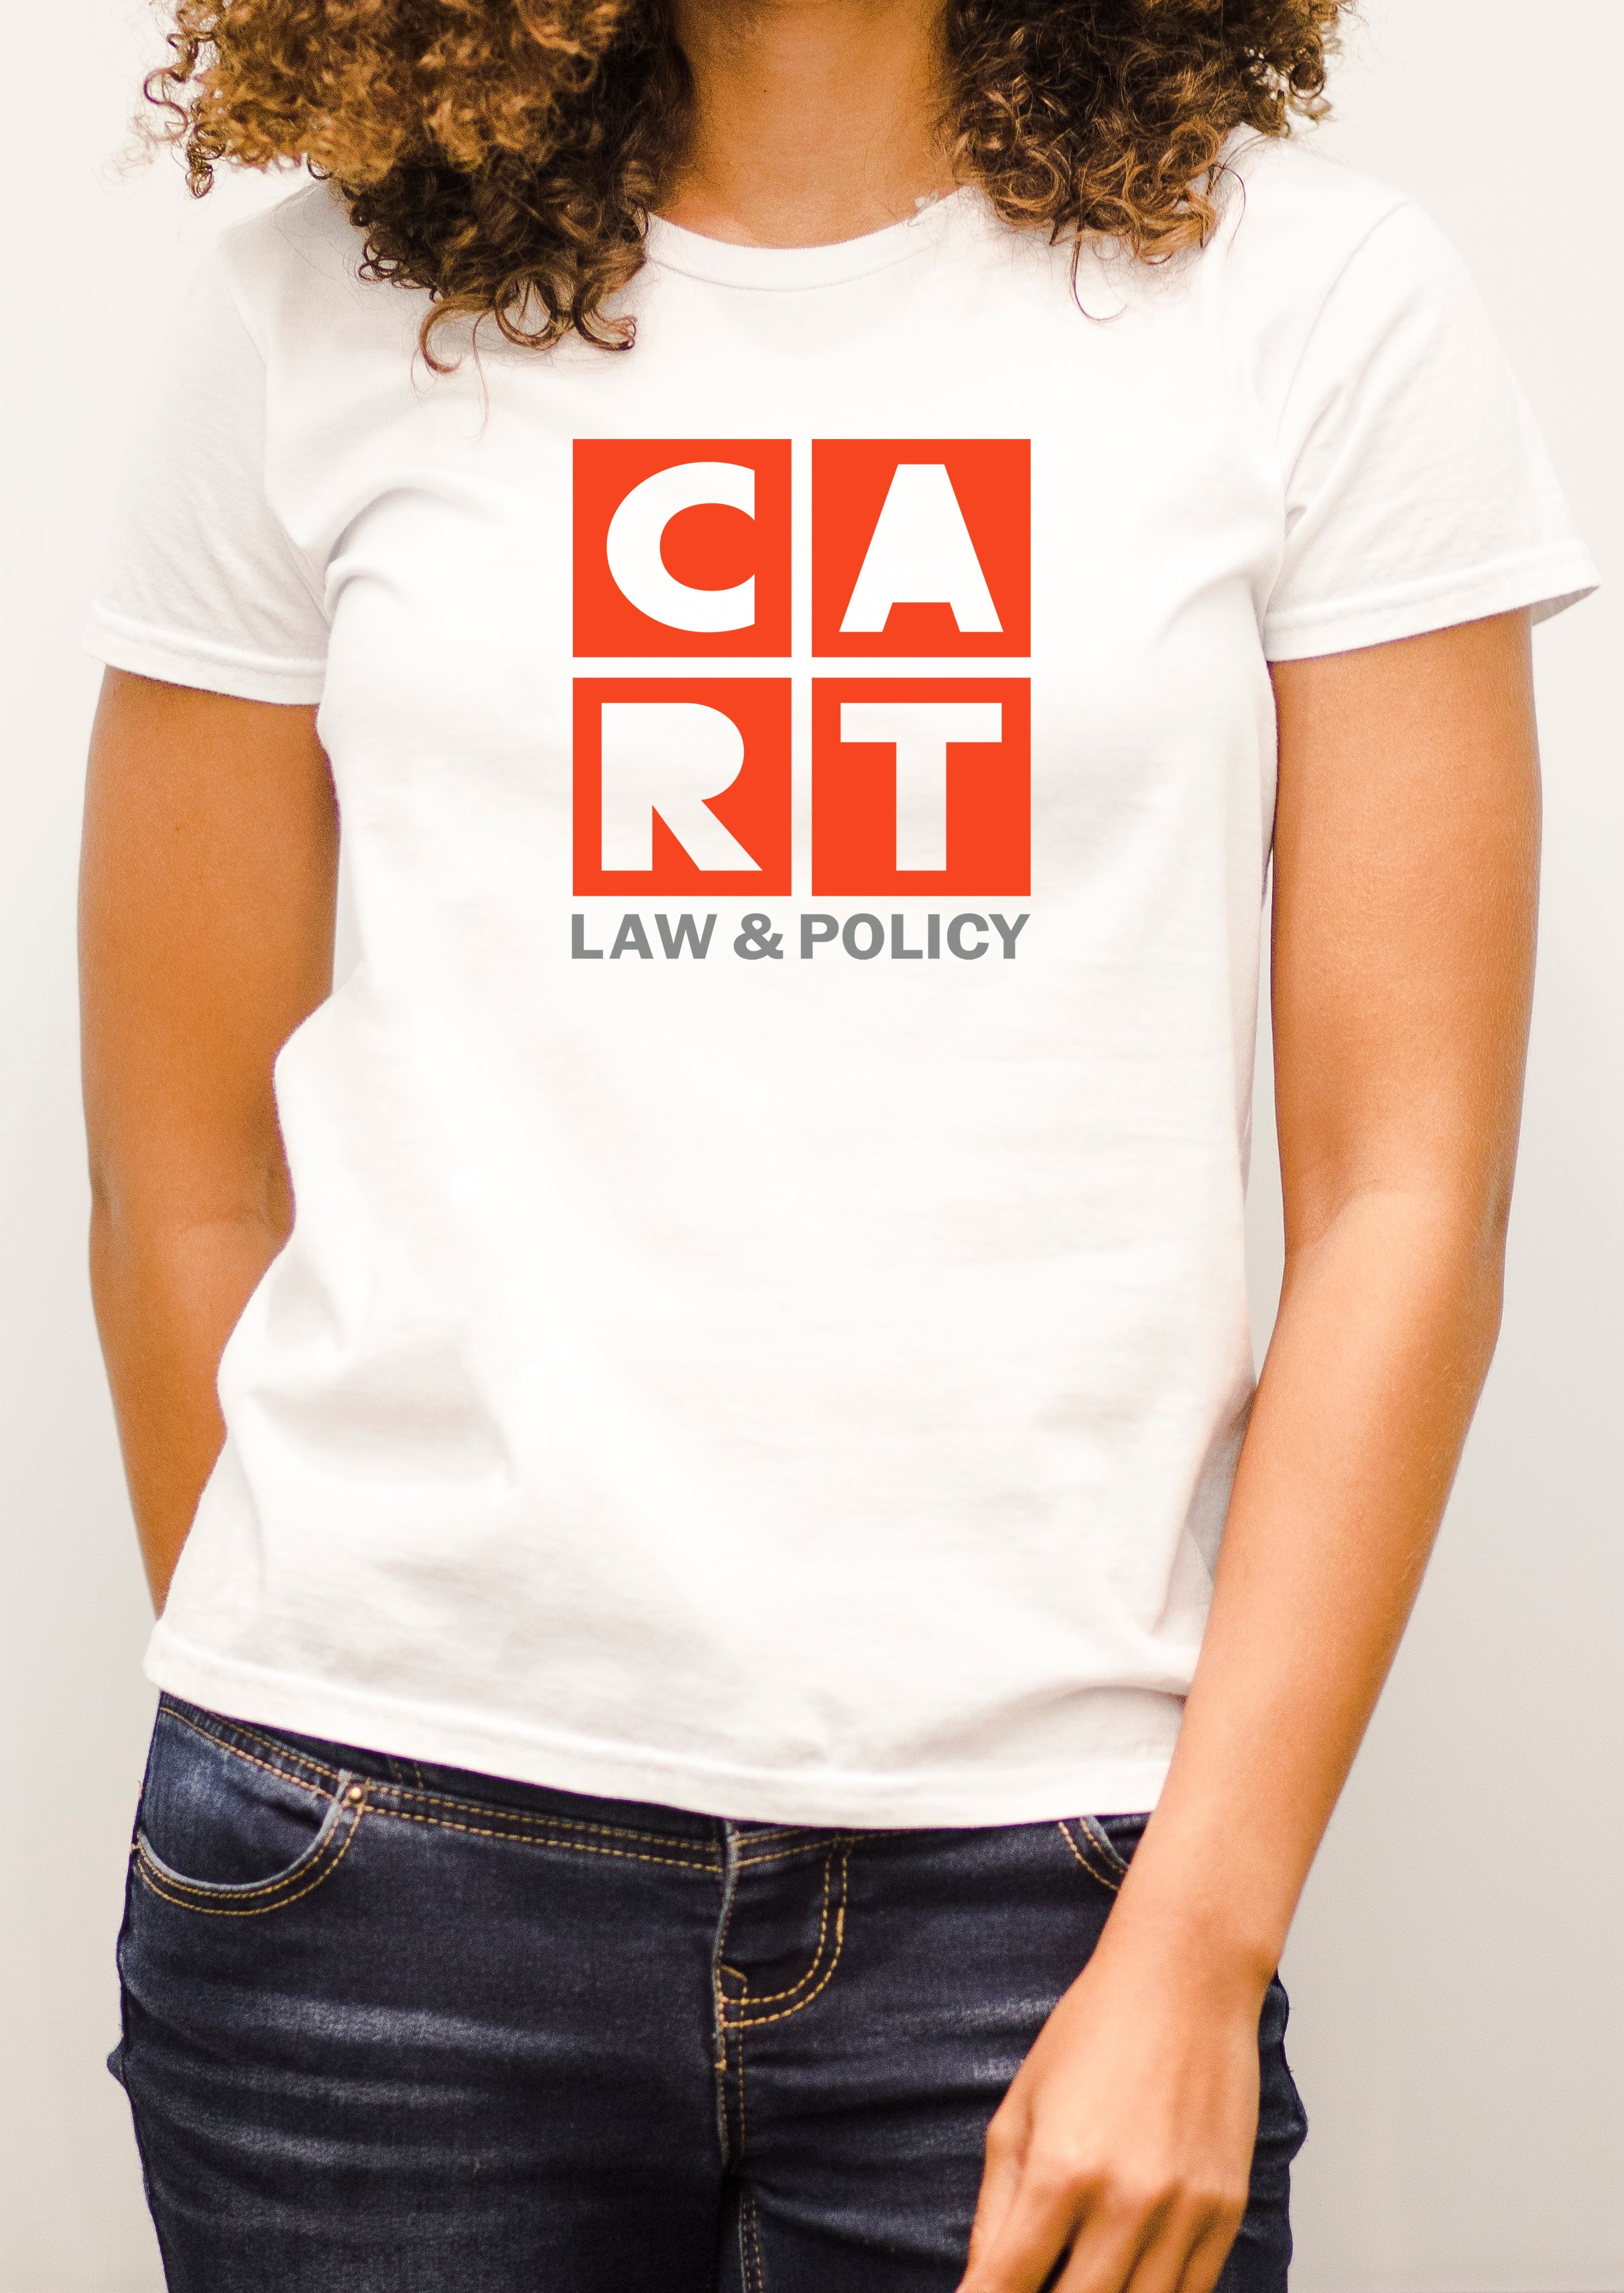 Women's short sleeve t-shirt - law and policy red/grey